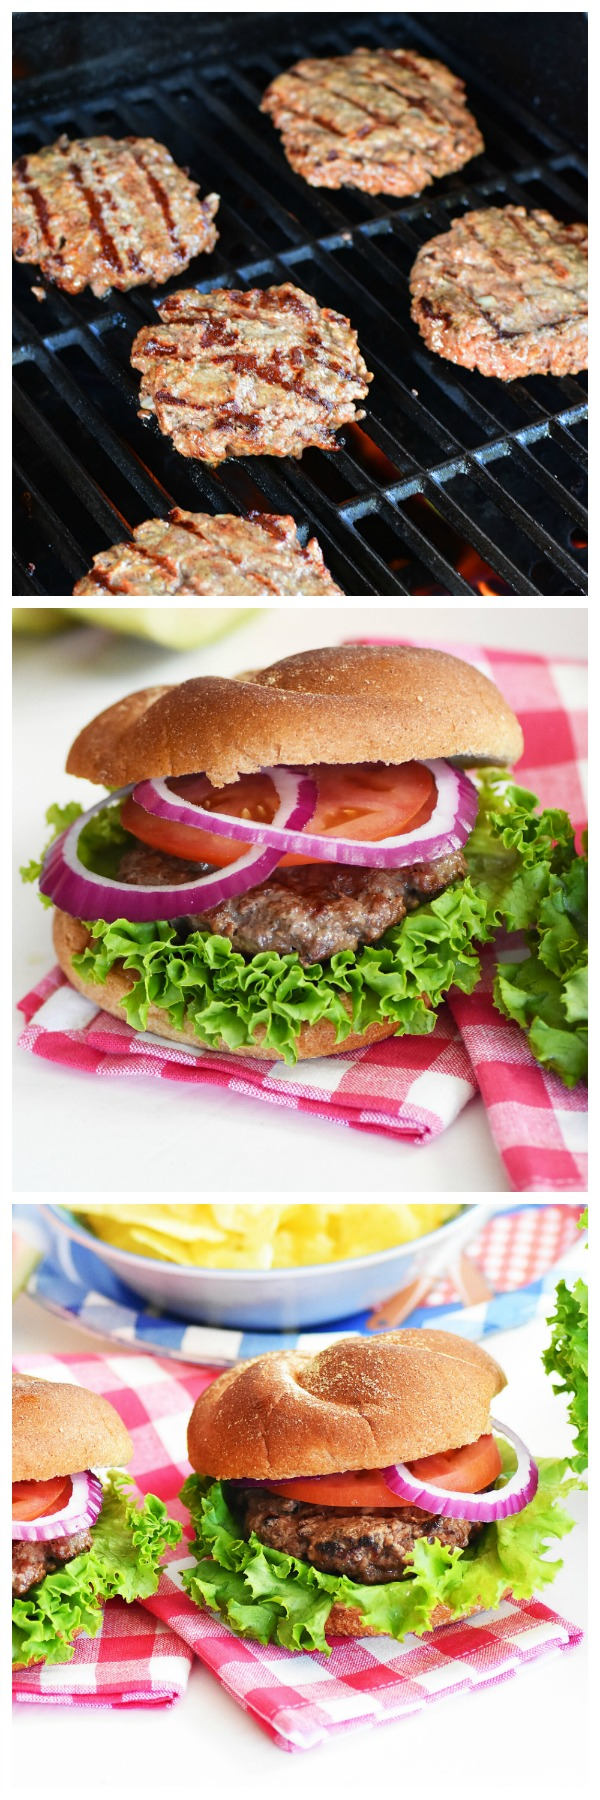 hearty-backyard-burger-hero